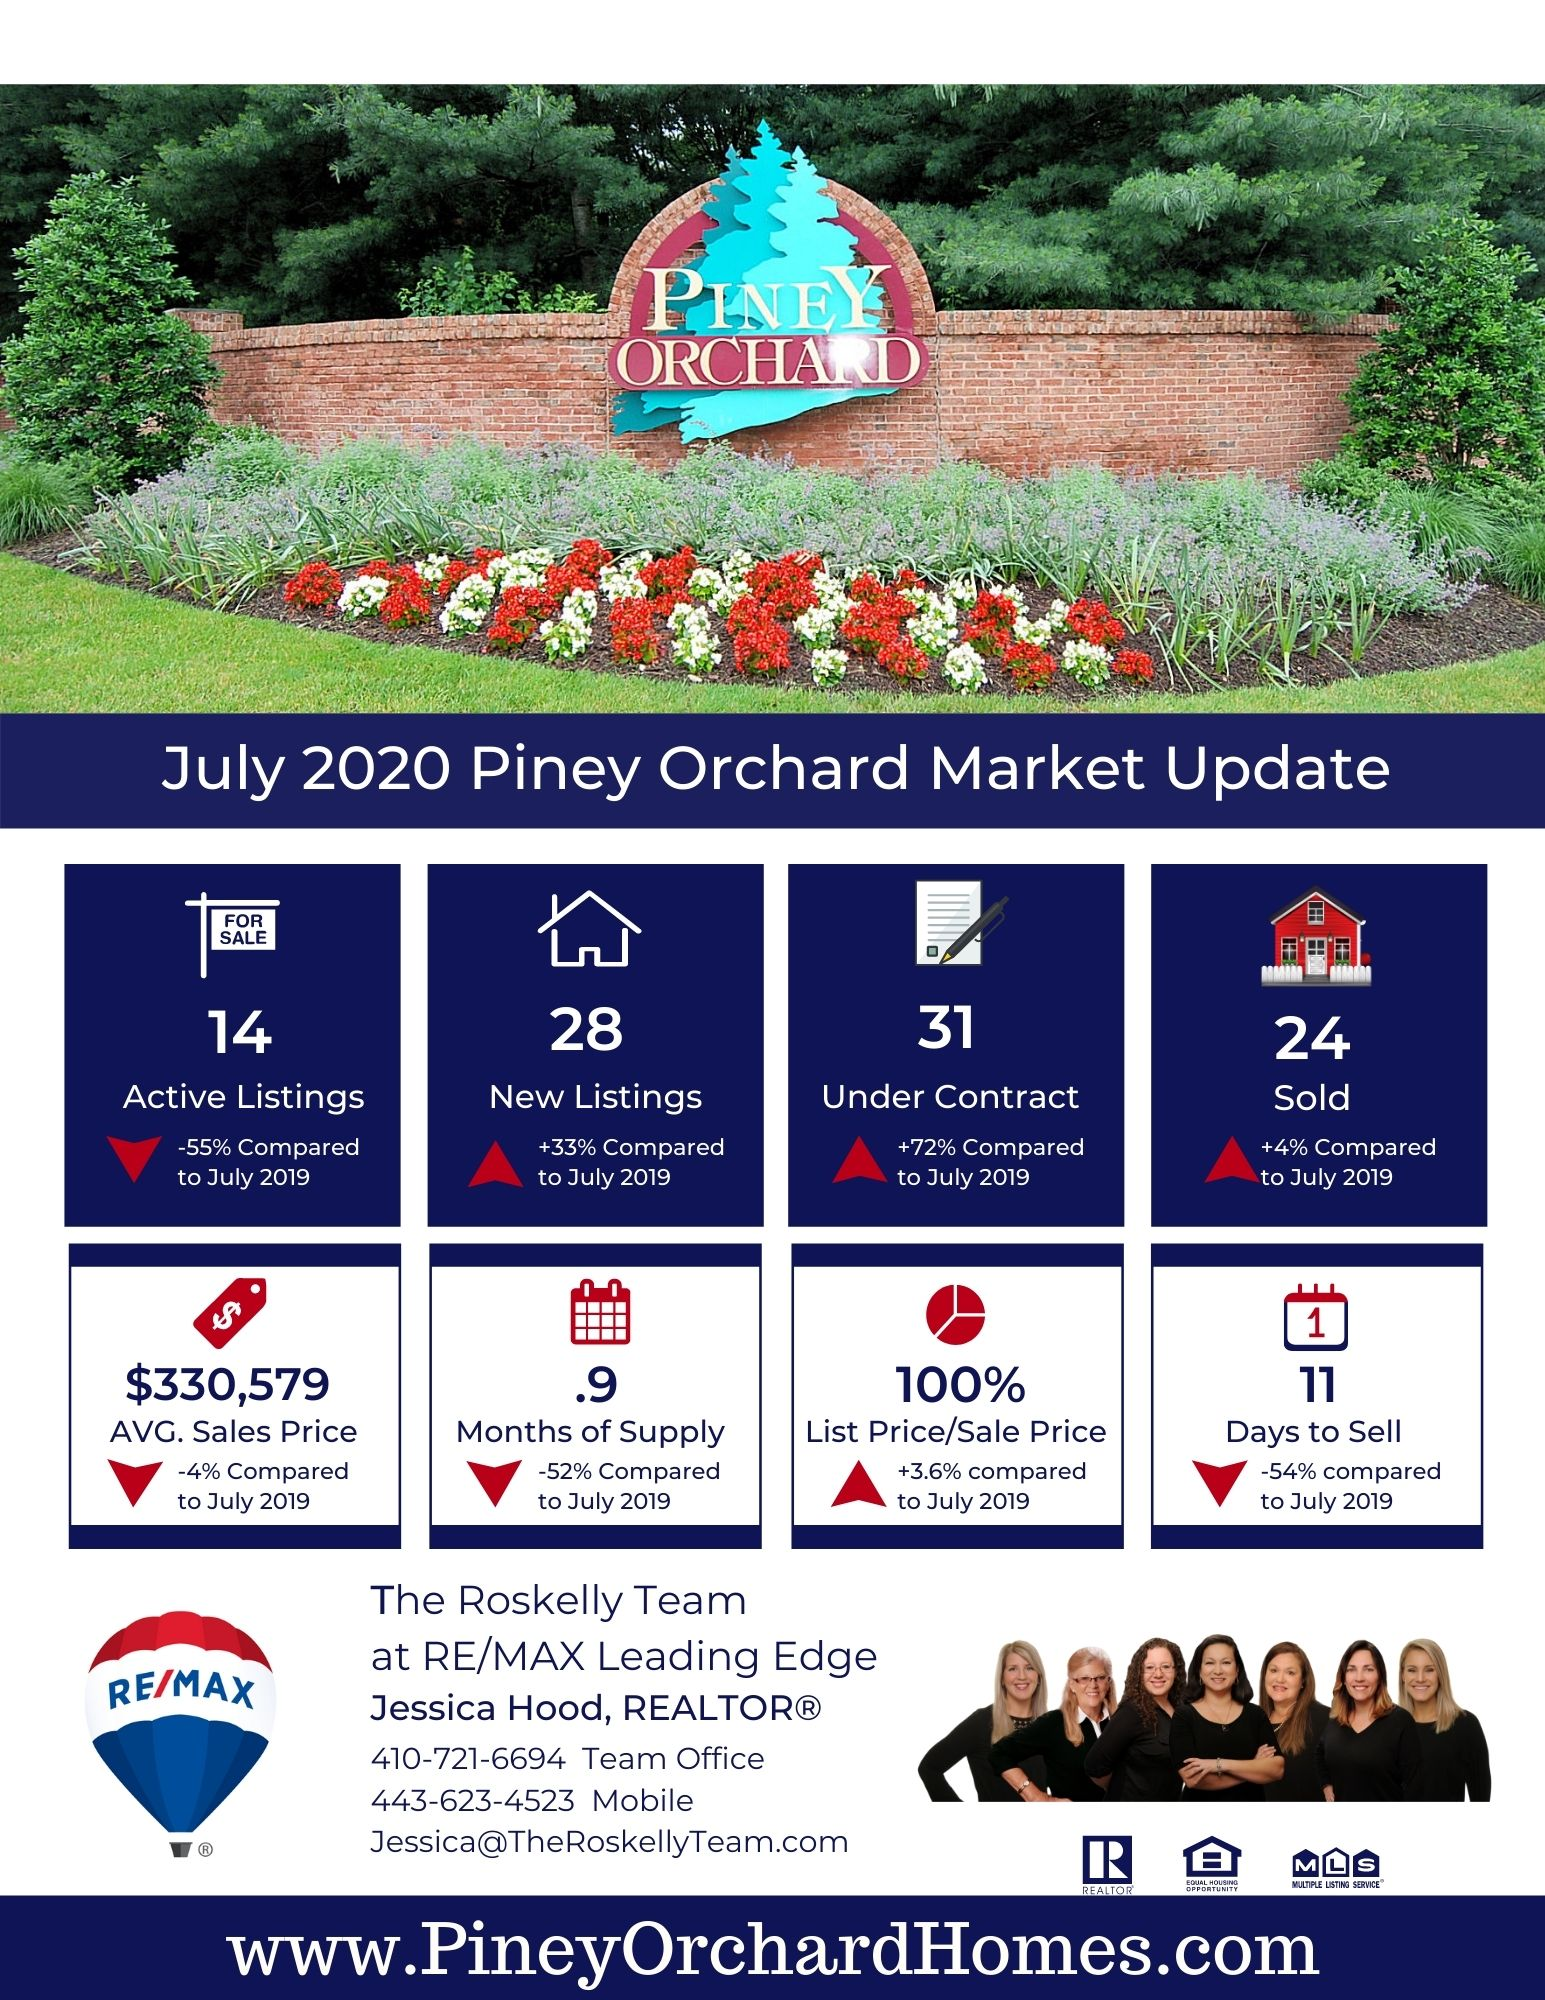 Piney Orchard real estate sales